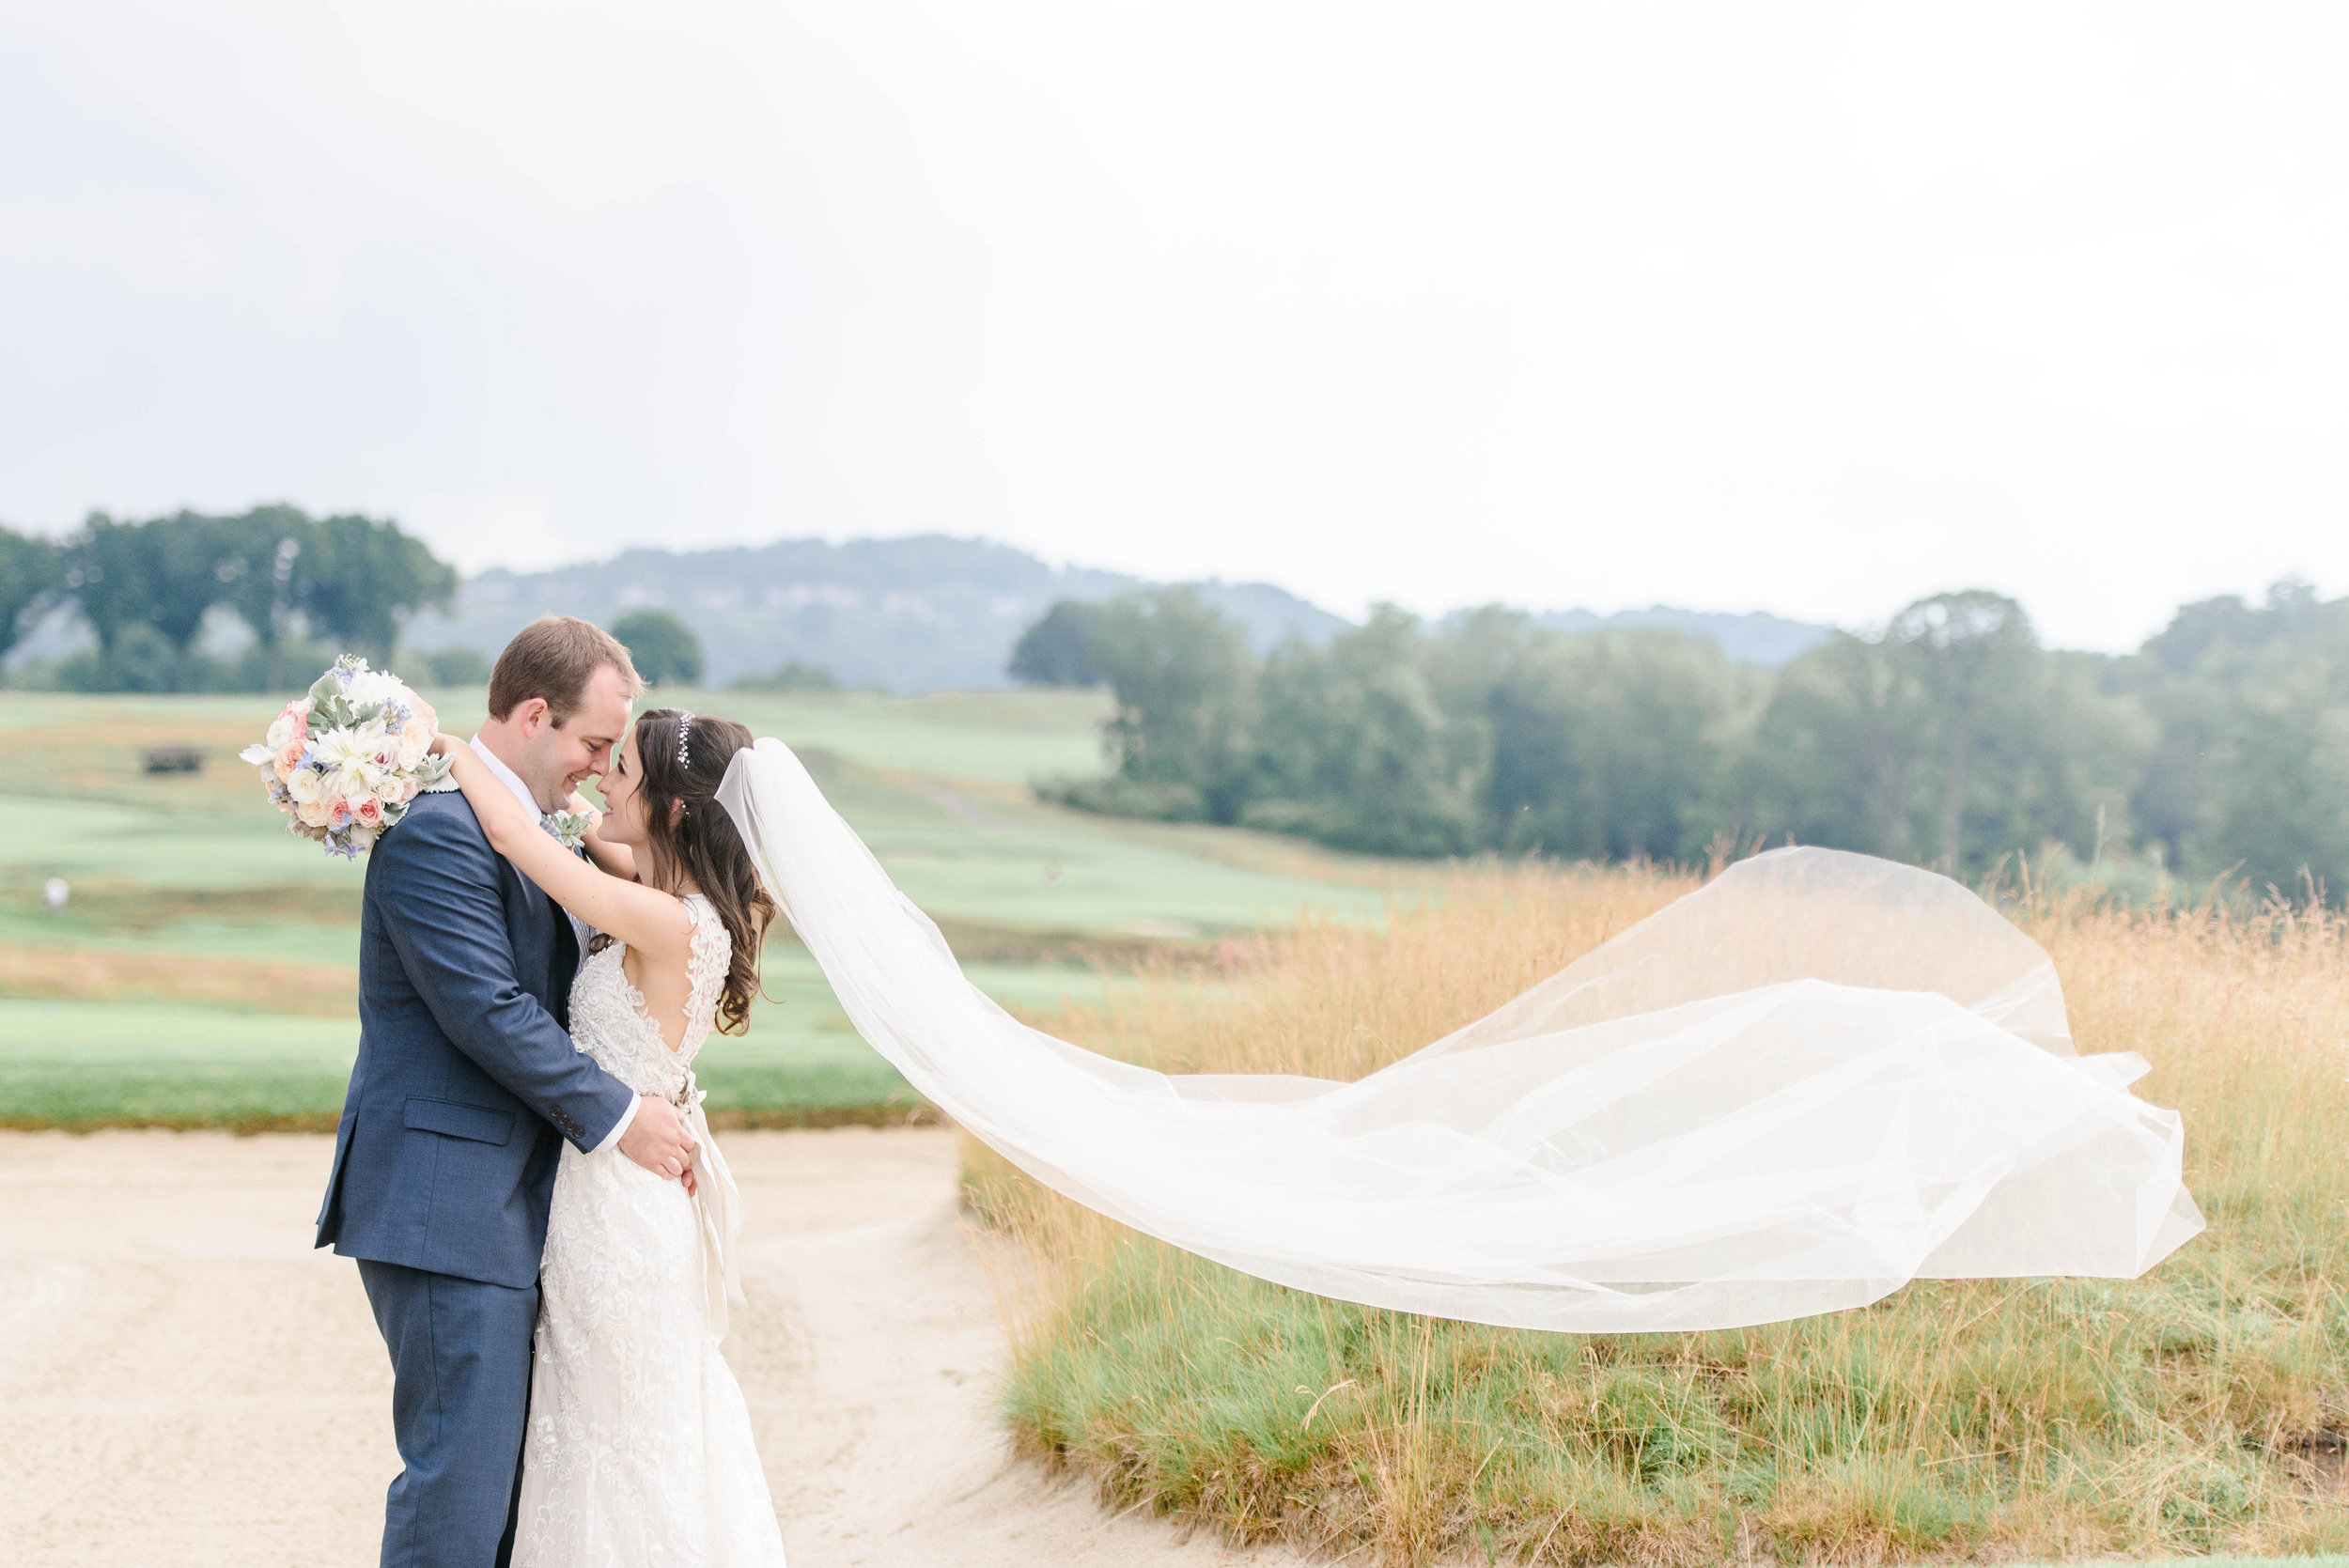 Bride's veil flying in the wind as bride and groom take pictures at the Oakmont Country Club. Exhale Events Greek Wedding Planners, Pittsburgh